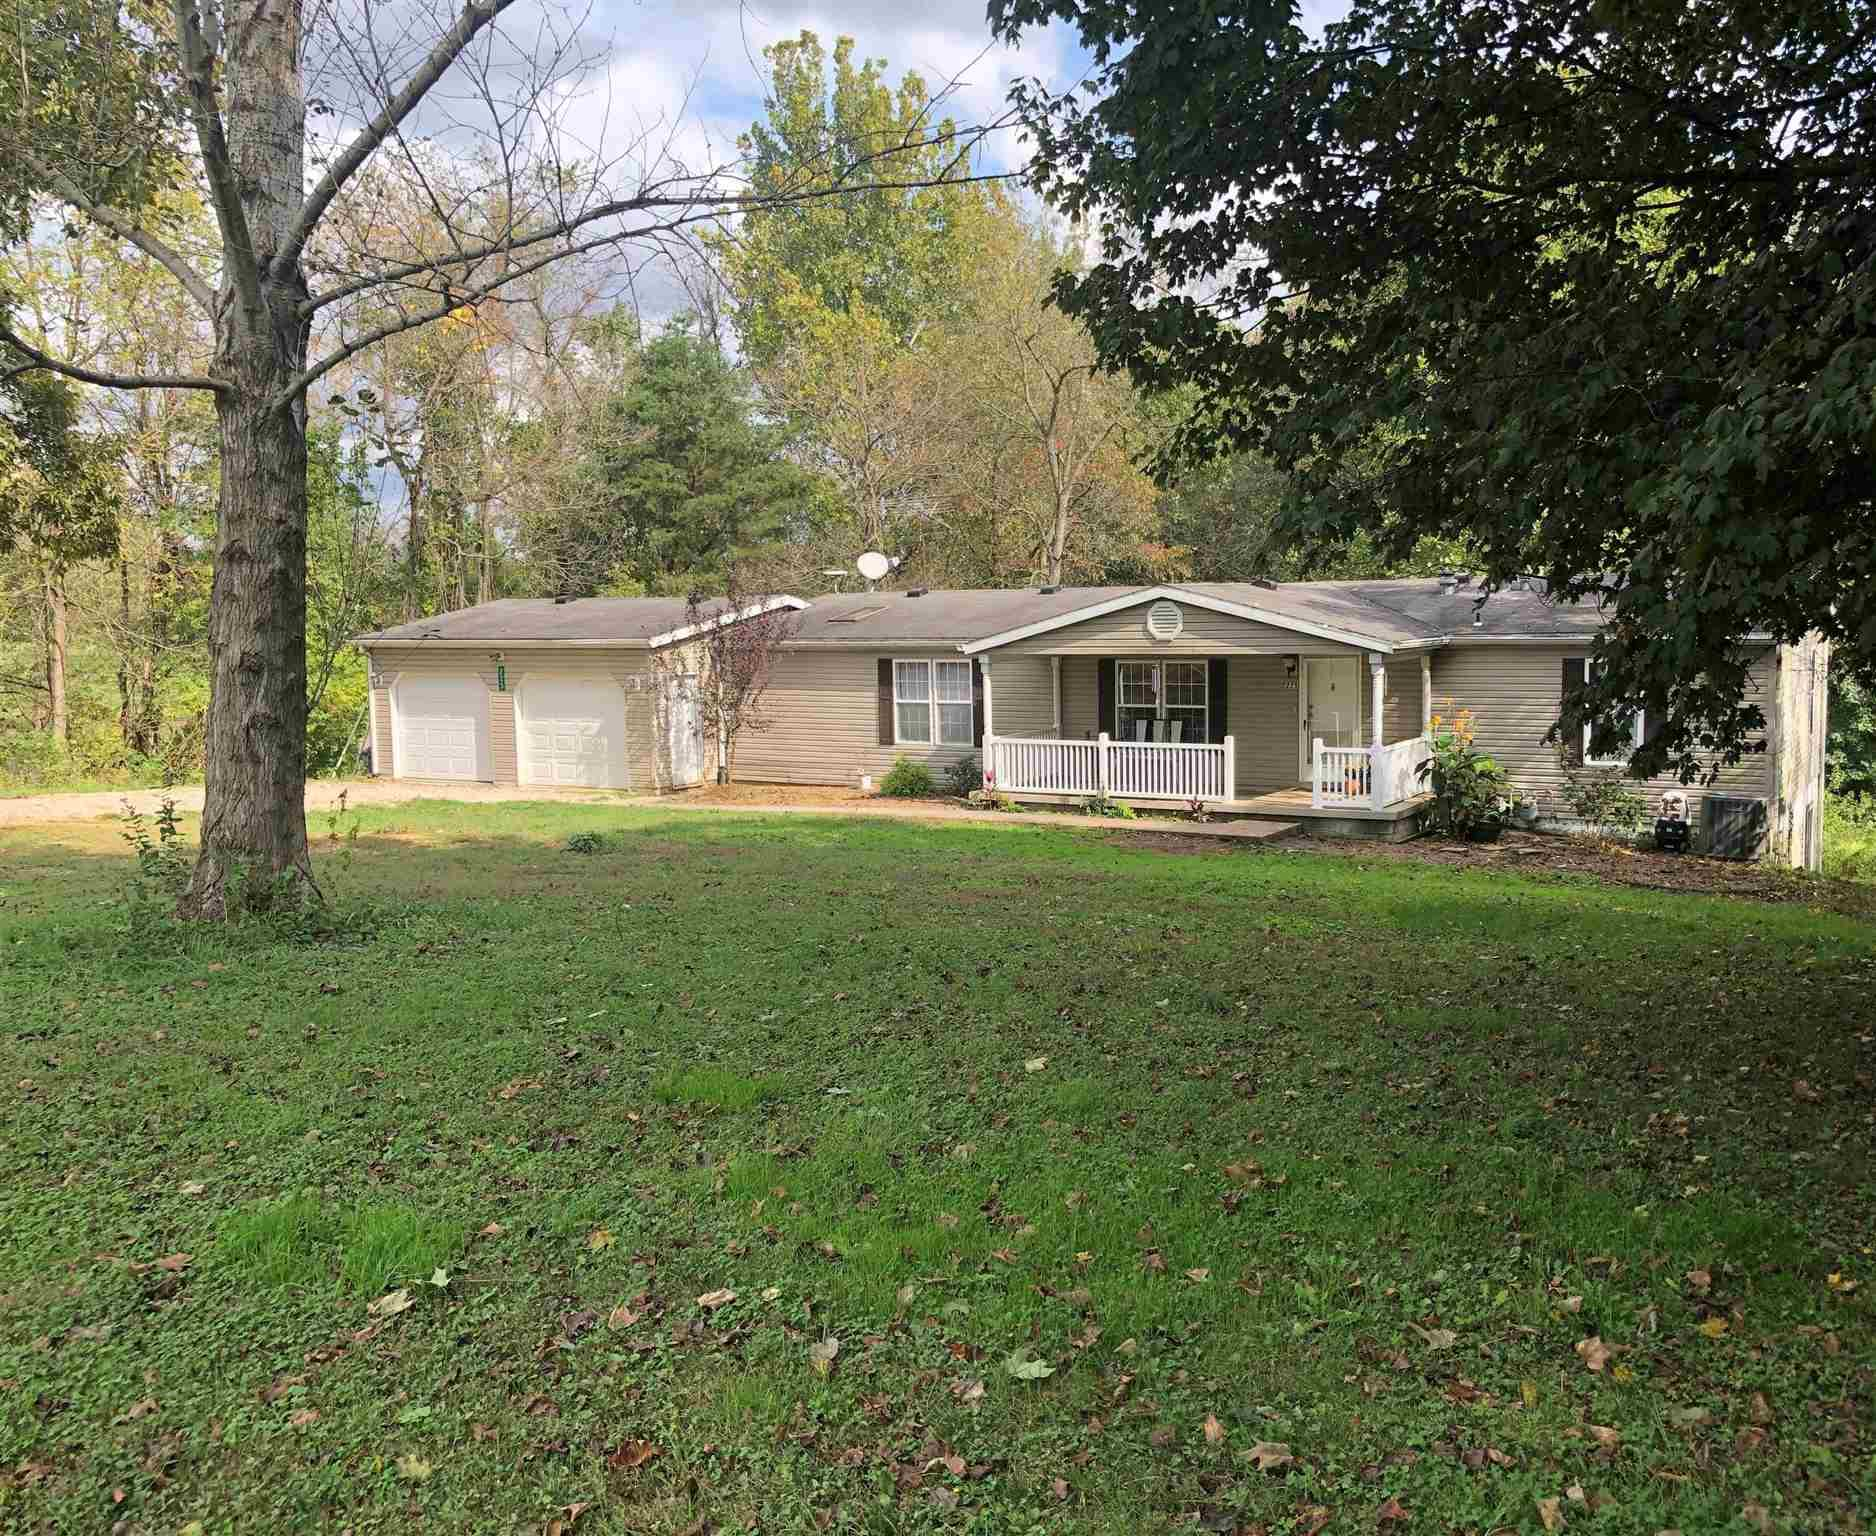 You'll love that this 4 bedroom, 2 bath home sits on almost 2 acres in a country and private setting, but still in the city limits. This home also offers a large living room, eat-in-kitchen and an elevated deck overlooking the partially wooded back yard. You won't fall short of storage in the full finished walk-out basement, 2 car attached garage or the large updated outbuilding. Also new is a completely remodeled bathroom with a touch of modern flare!